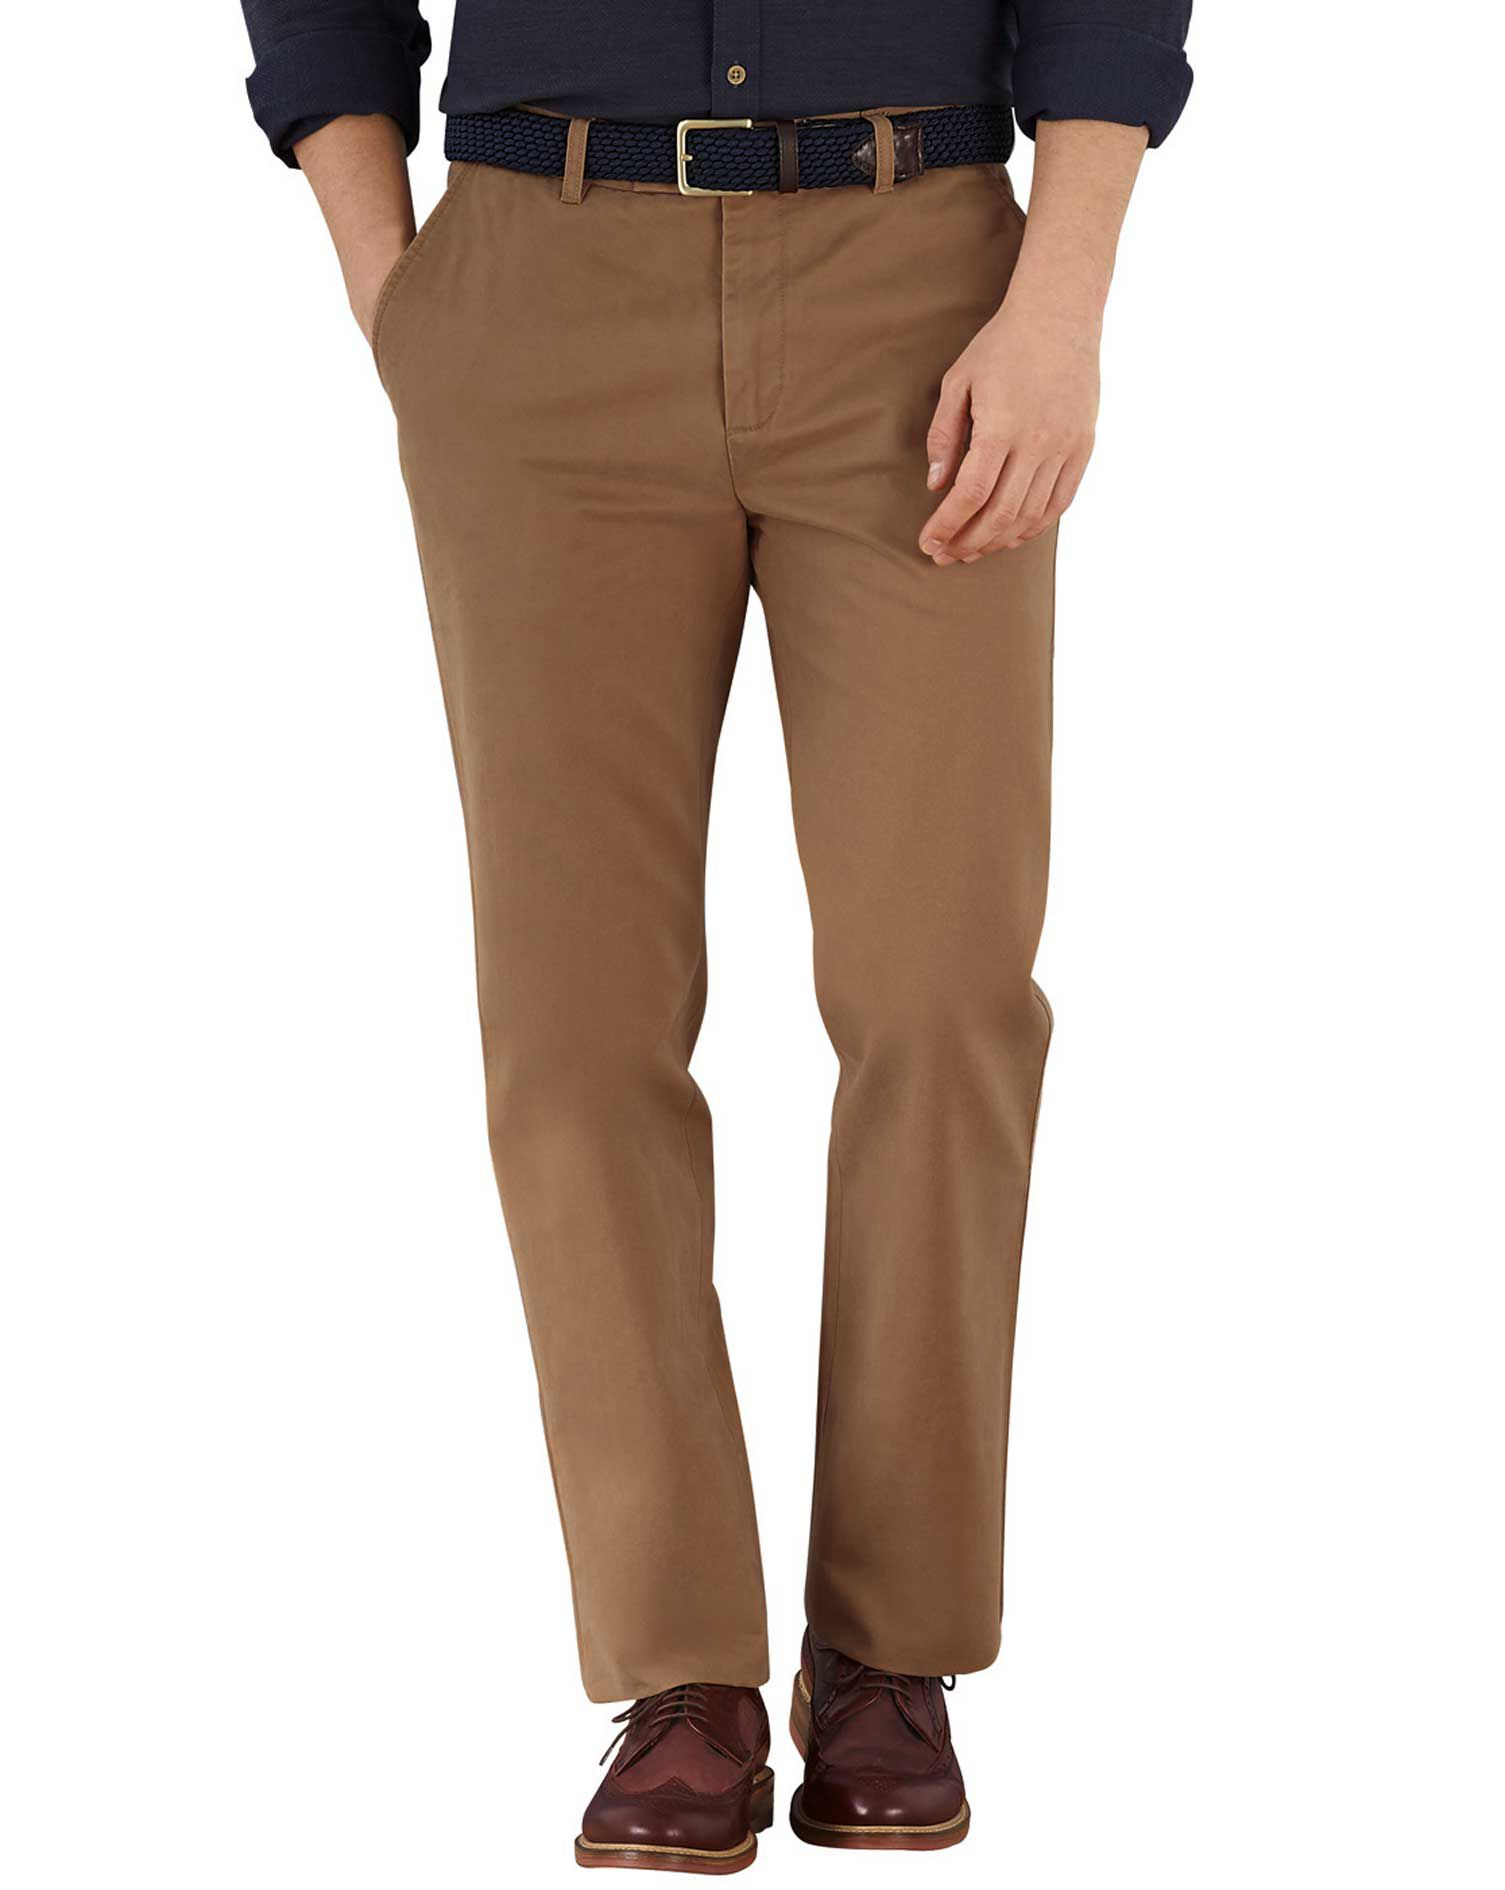 Camel Slim Fit Flat Front Cotton Chino Trousers Size W32 L34 by Charles Tyrwhitt